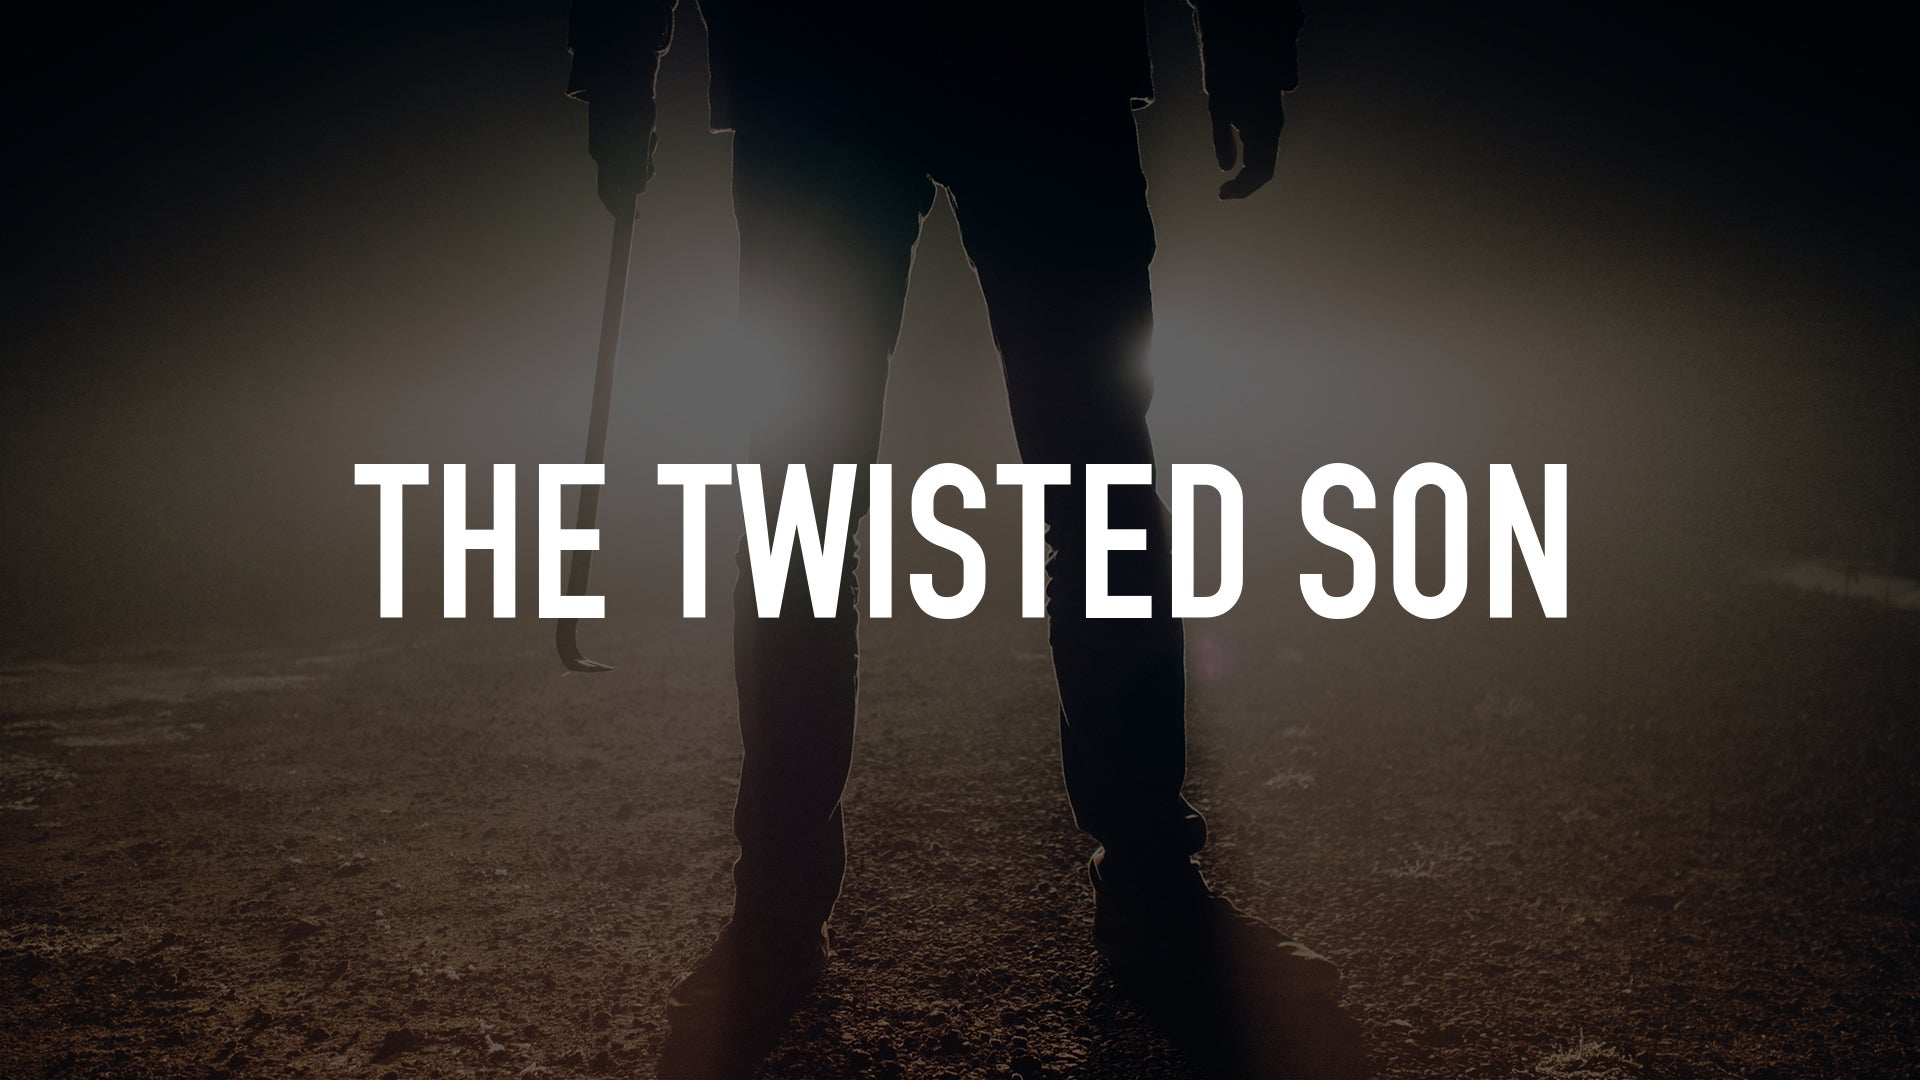 The Twisted Son